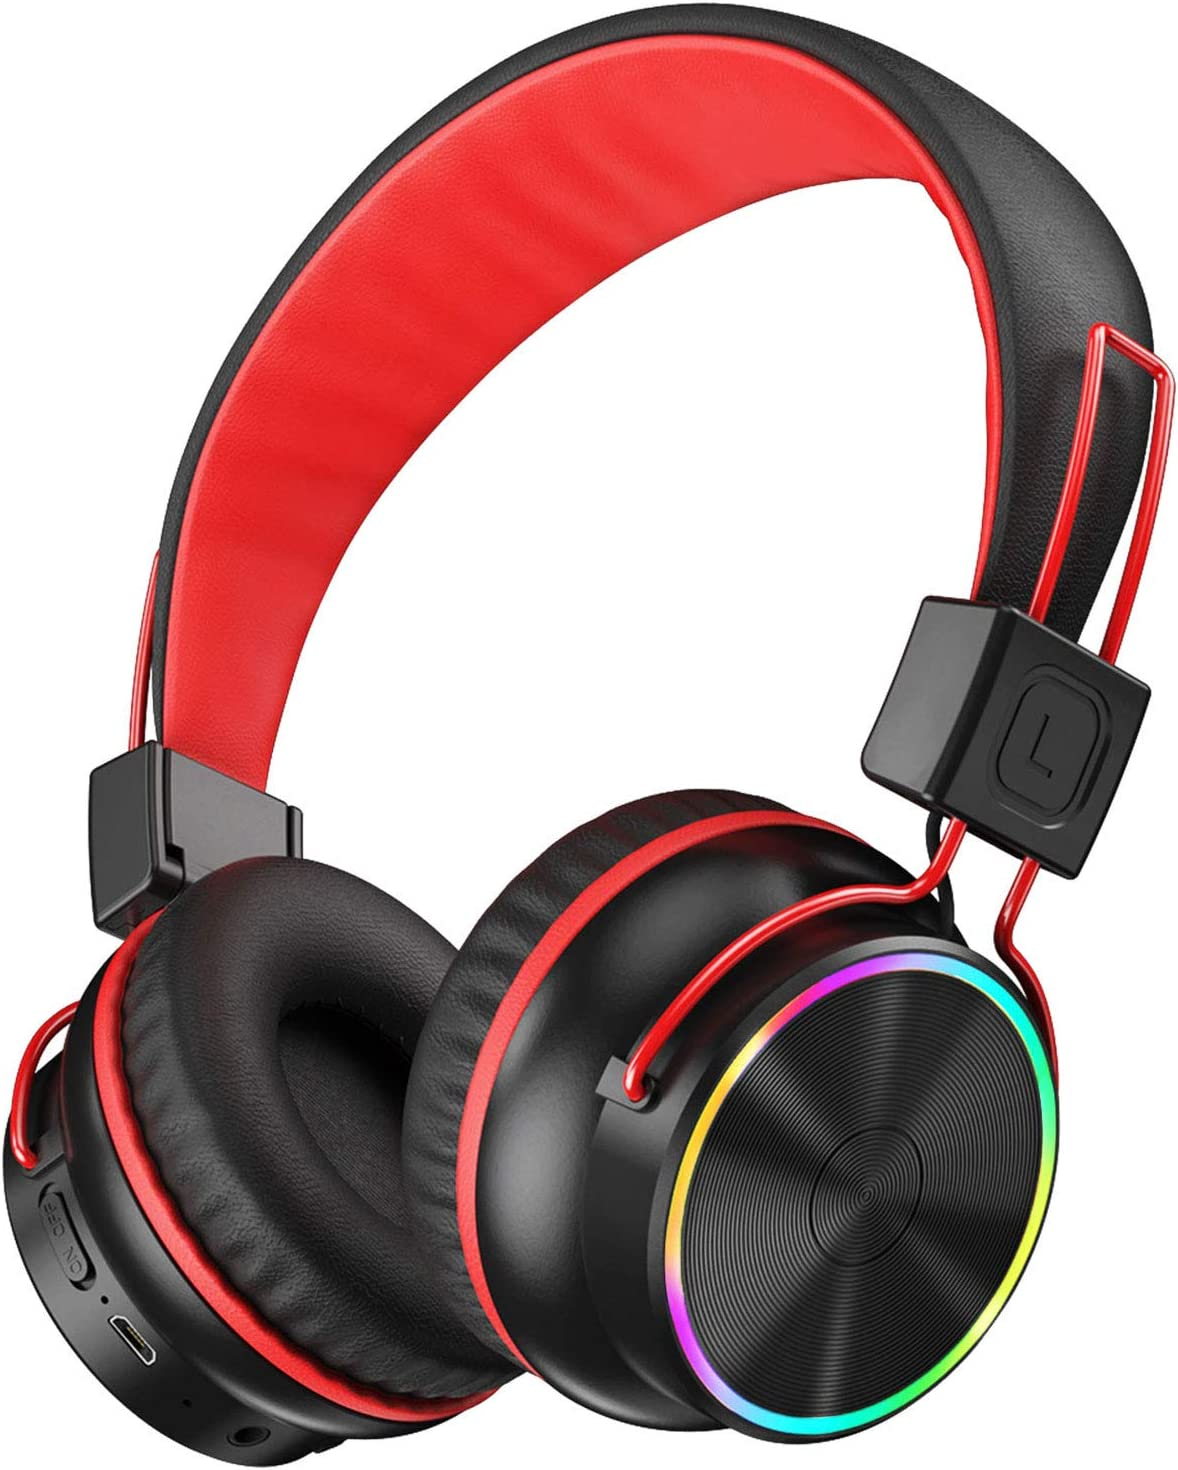 PeohZarr Kids Wireless Headphones with Microphone Foldable Stereo Sound Headphones for School Home Travel LED Light Up 94dB Kids Bluetooth On-Ear Headphones for Boys Girls Children 25 hrs Playtime